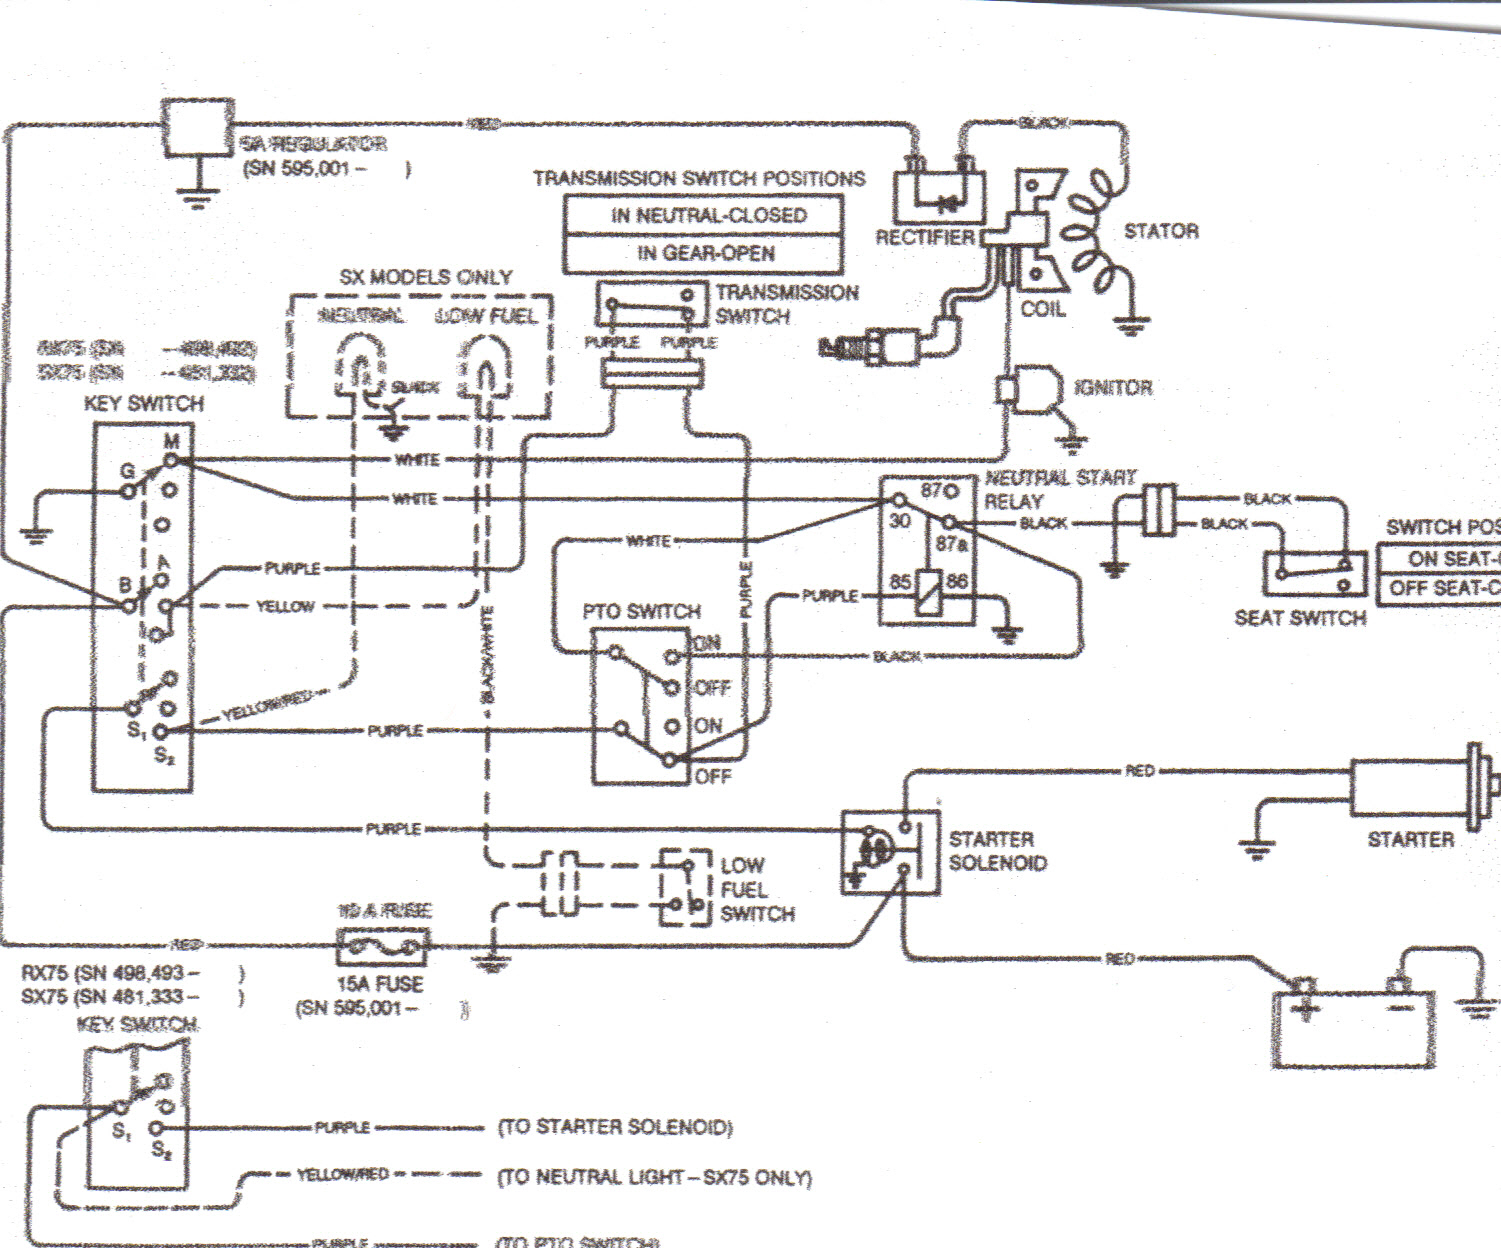 2010 07 03_172725_7 2 2010_12;25;50_PM wiring diagram for a john deere 6400 the wiring diagram john deere 190c wiring diagram at nearapp.co